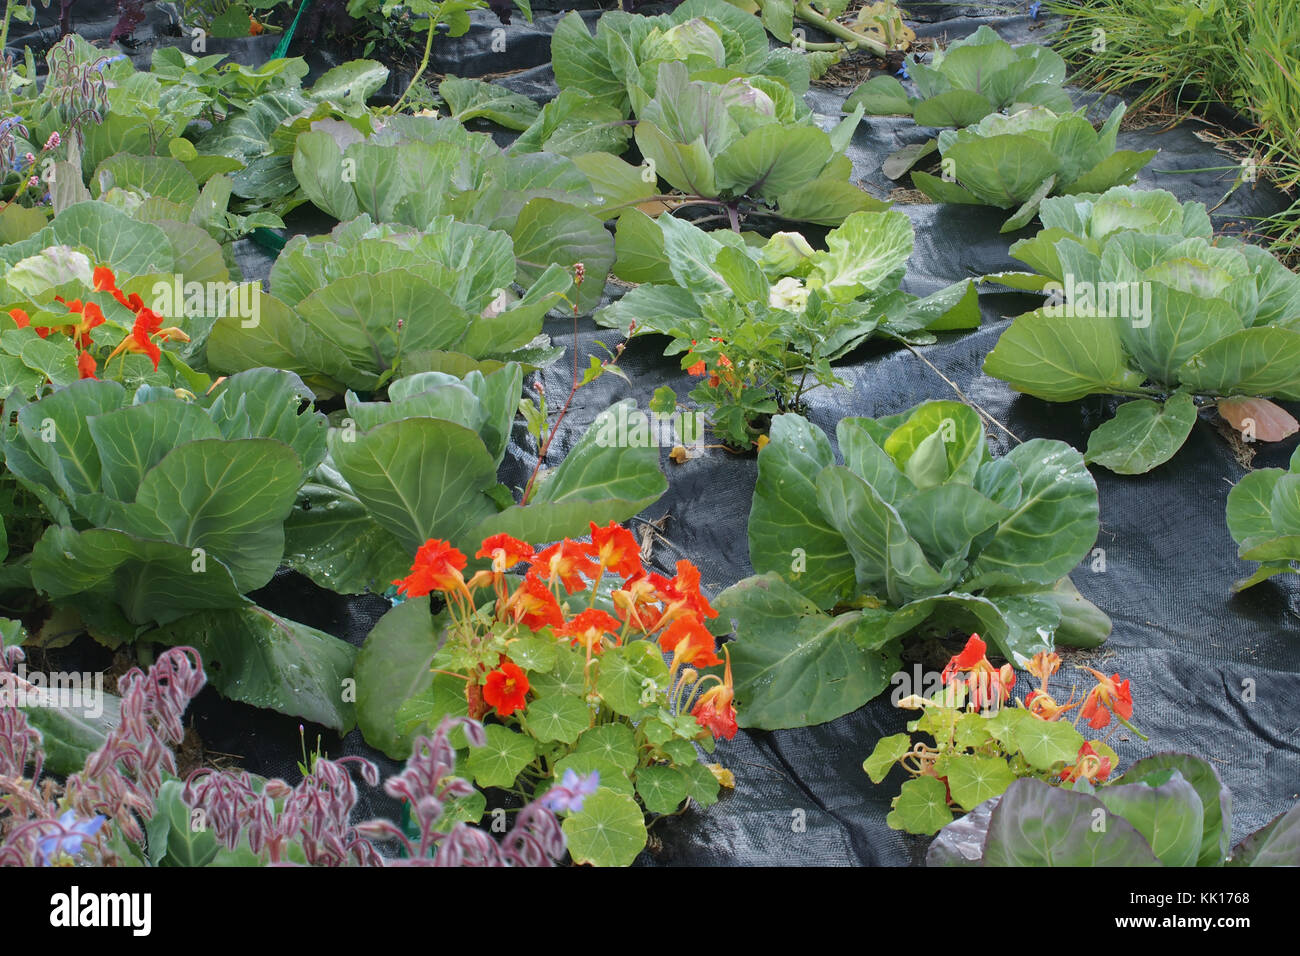 Growing cabbages and nasturtiums on an allotment site, Scotland - Stock Image